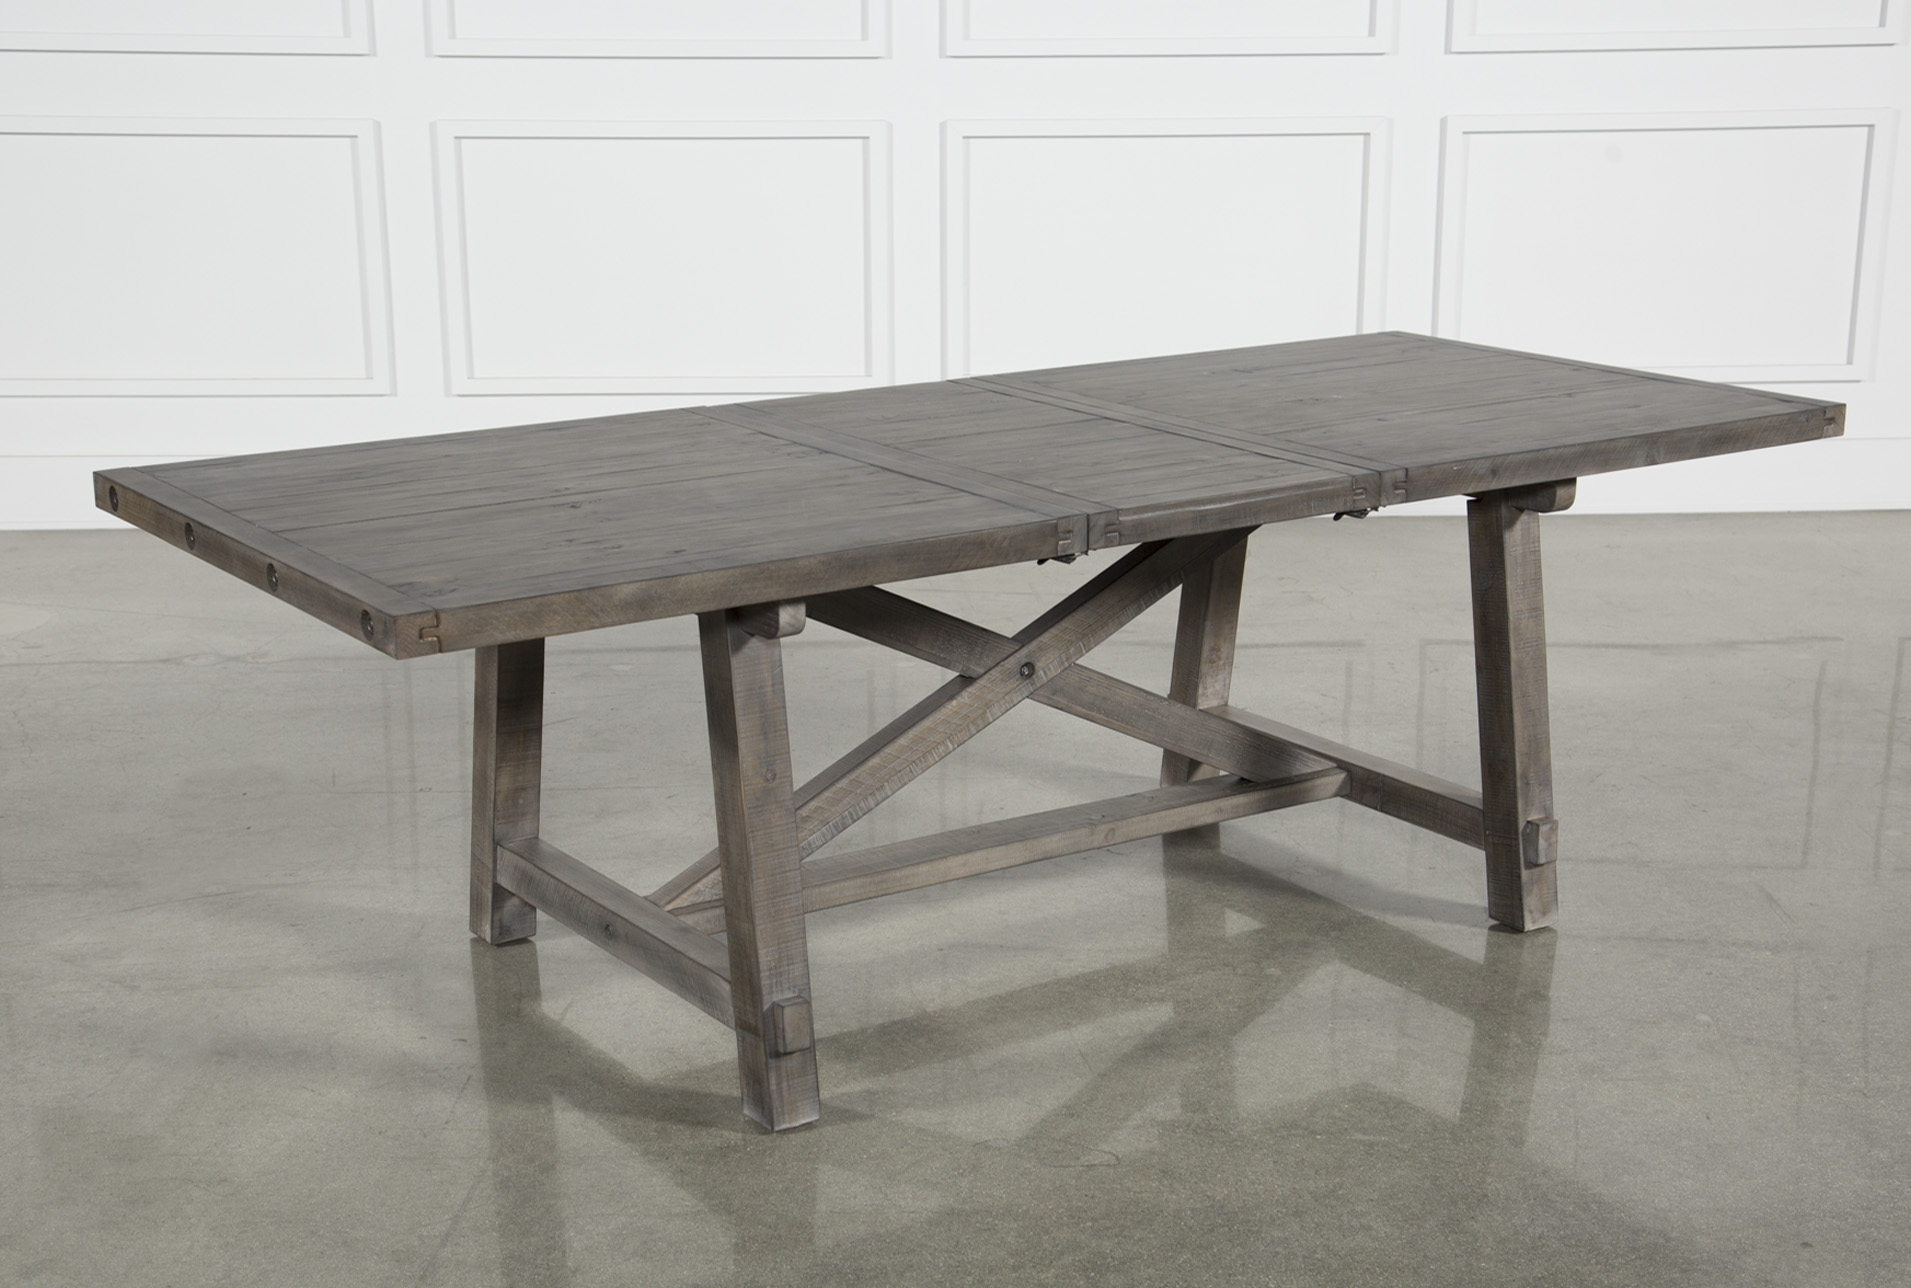 Cross Leg Dining Table Pertaining To Most Recently Released Jaxon Extension Rectangle Dining Tables (Image 6 of 20)